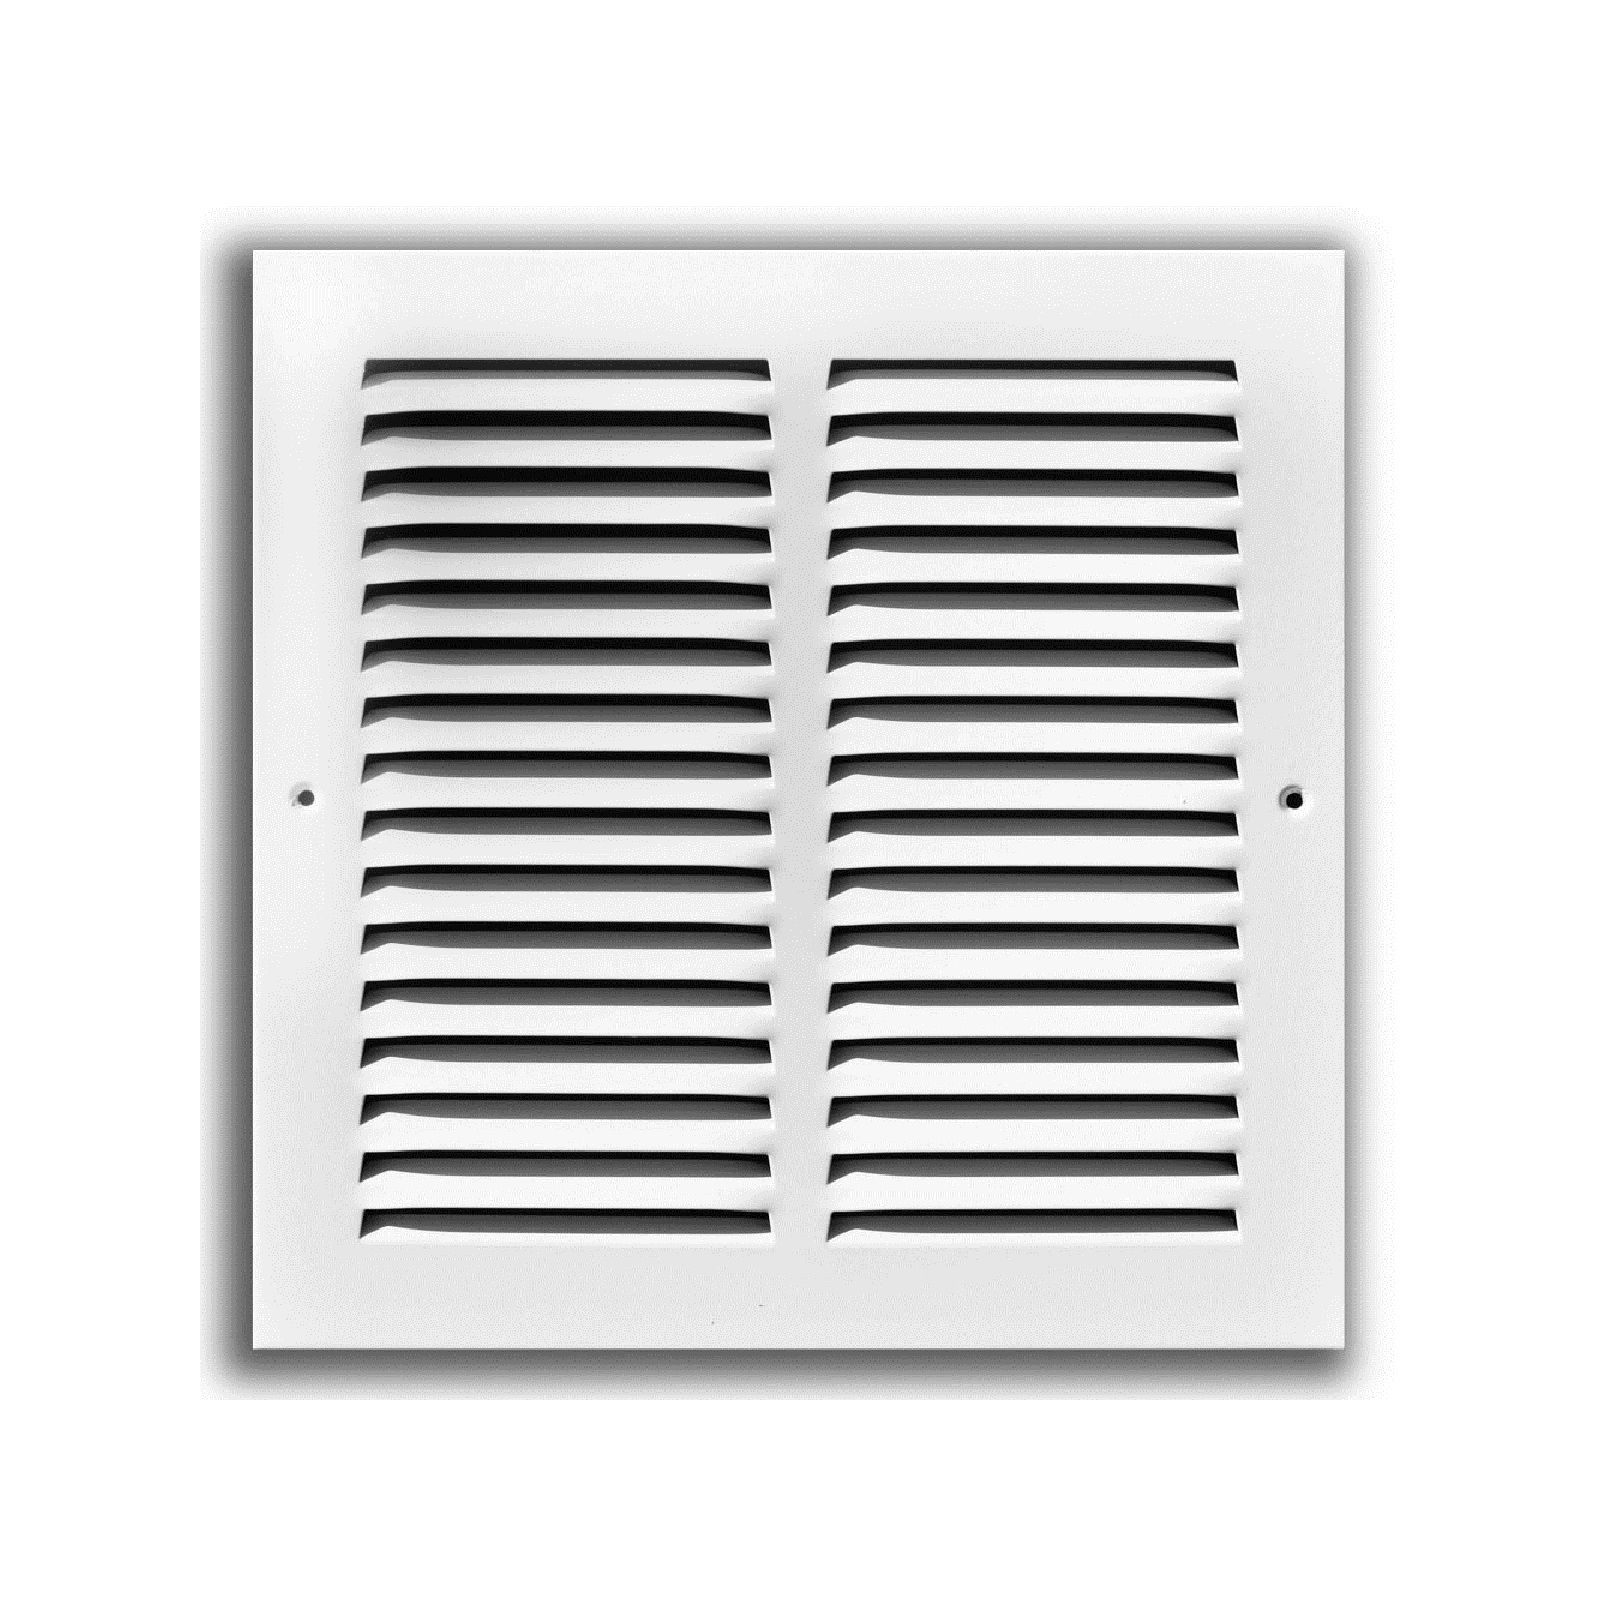 "TRUaire 170 08X04 - Steel Return Air Grille - 1/2"" Spaced Fin, White, 08"" X 04"""